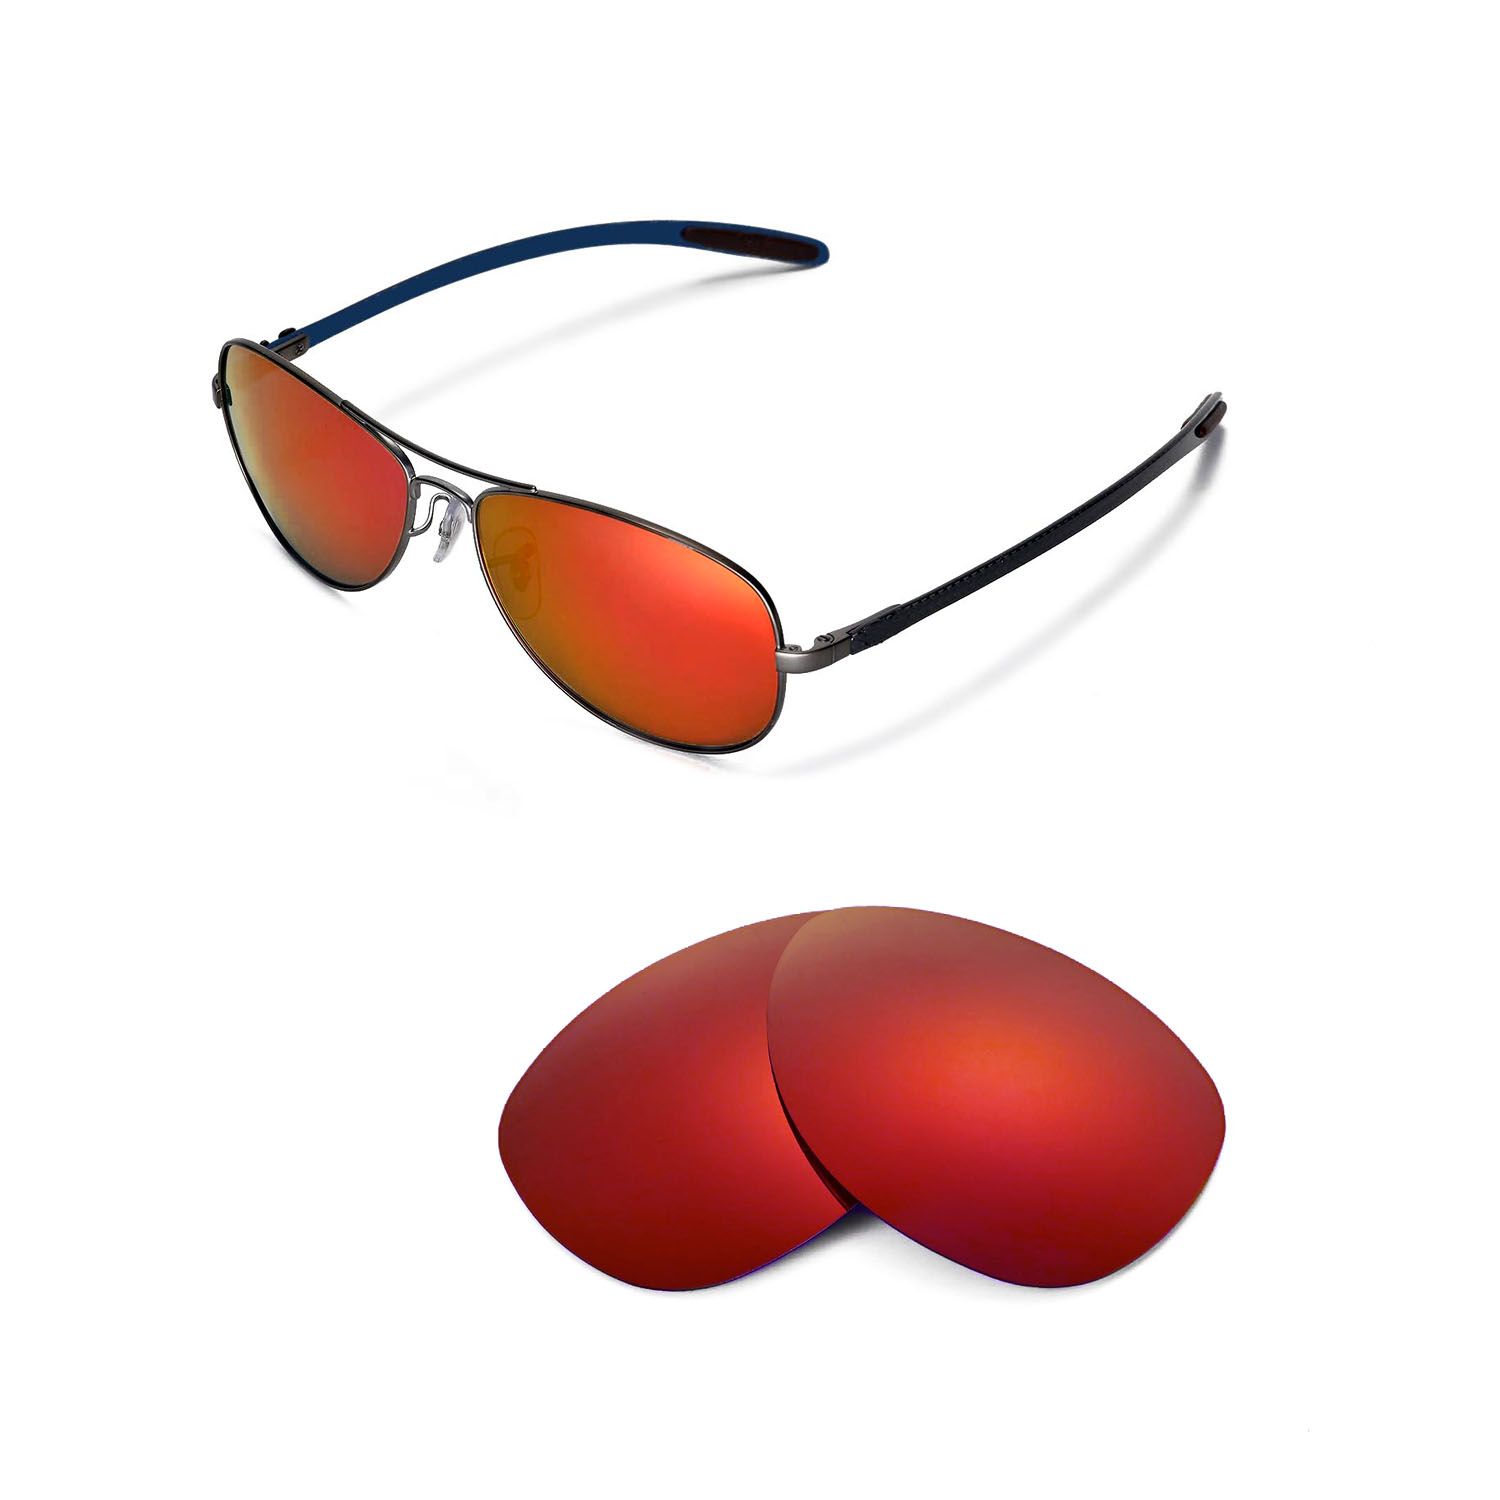 0e661a0ae5 Details about New Walleva Polarized Fire Red Replacement For Ray-Ban RB8301  59mm